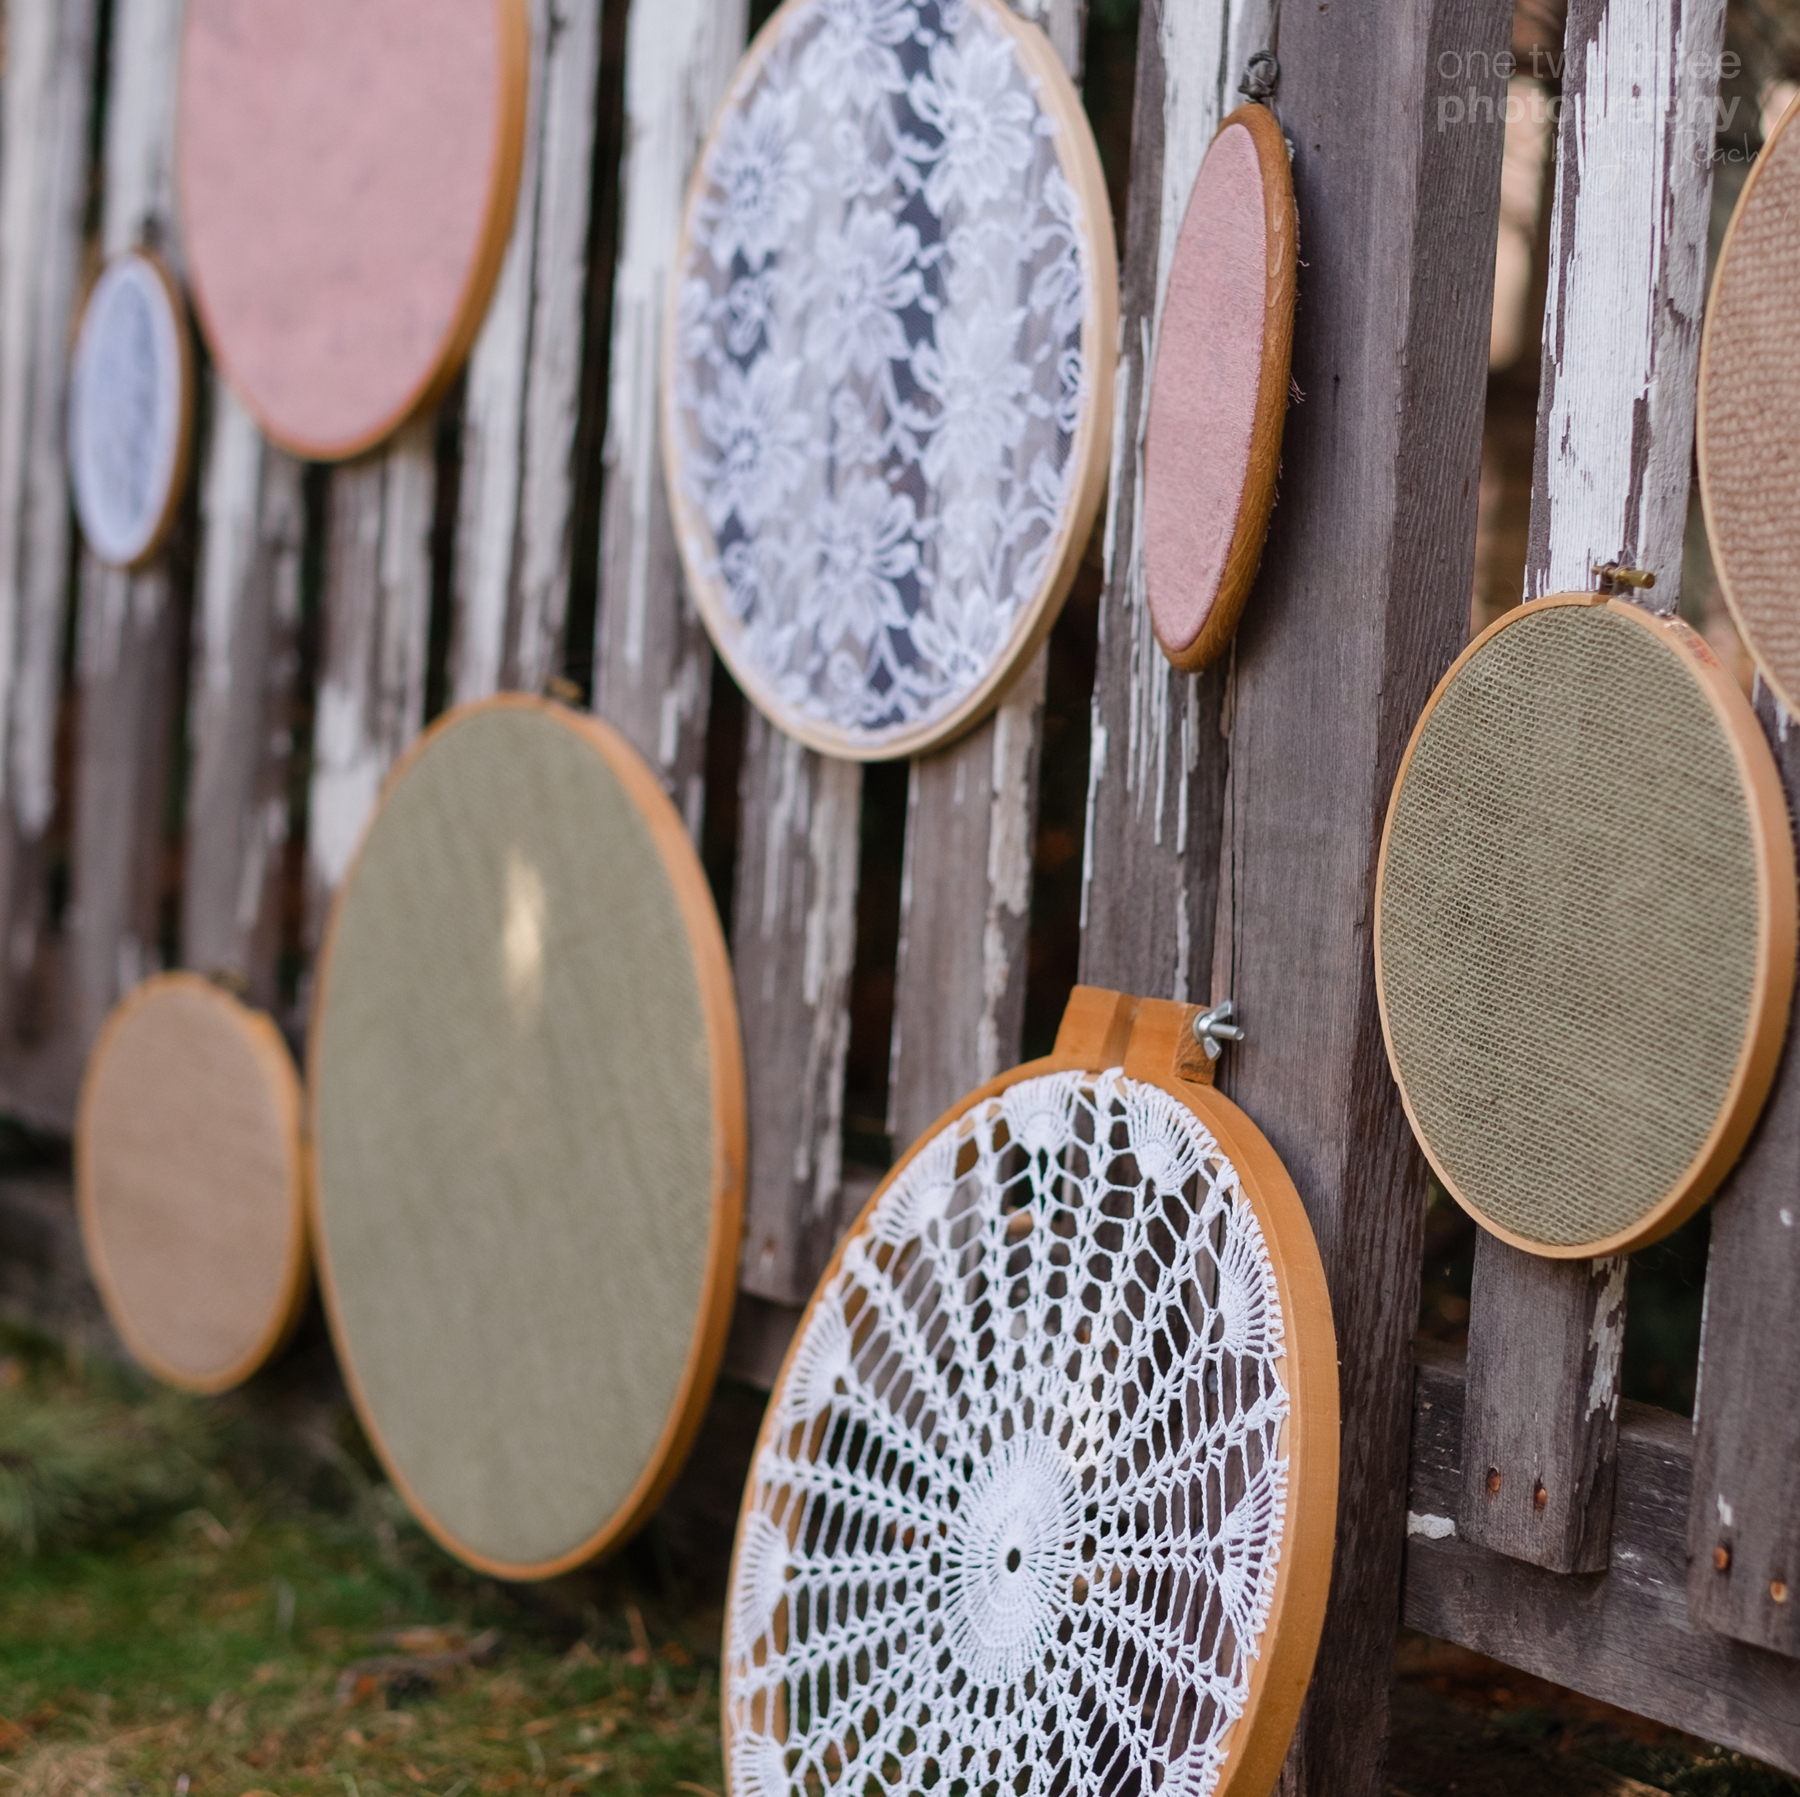 Lace and burlap inspired decor